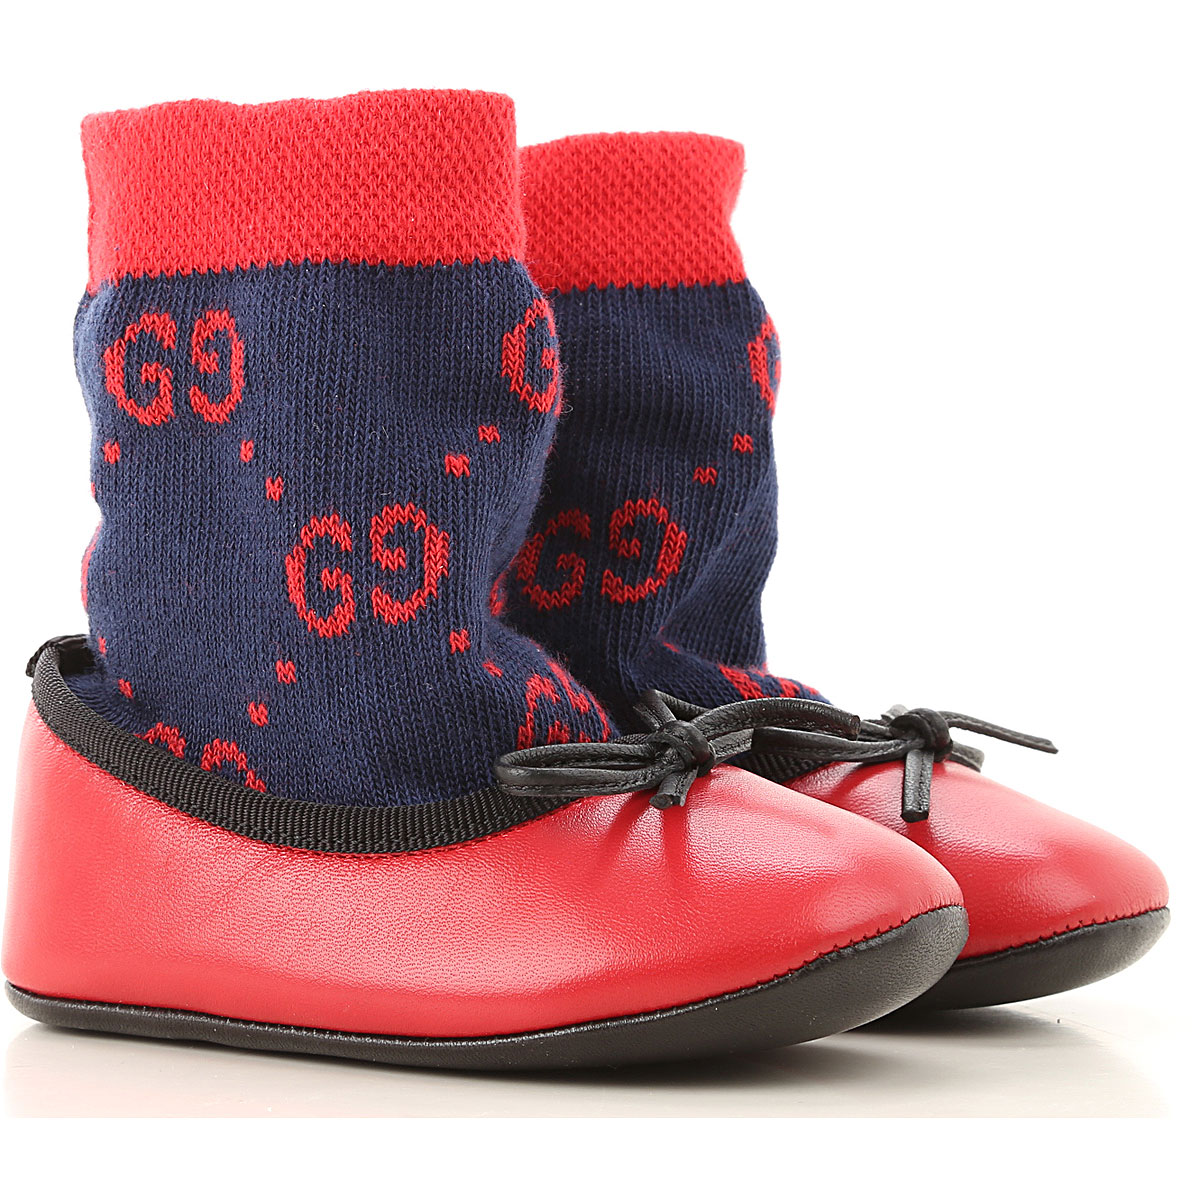 Gucci Baby Shoes for Girls On Sale, Red, Leather, 2019, 2.5C 2C